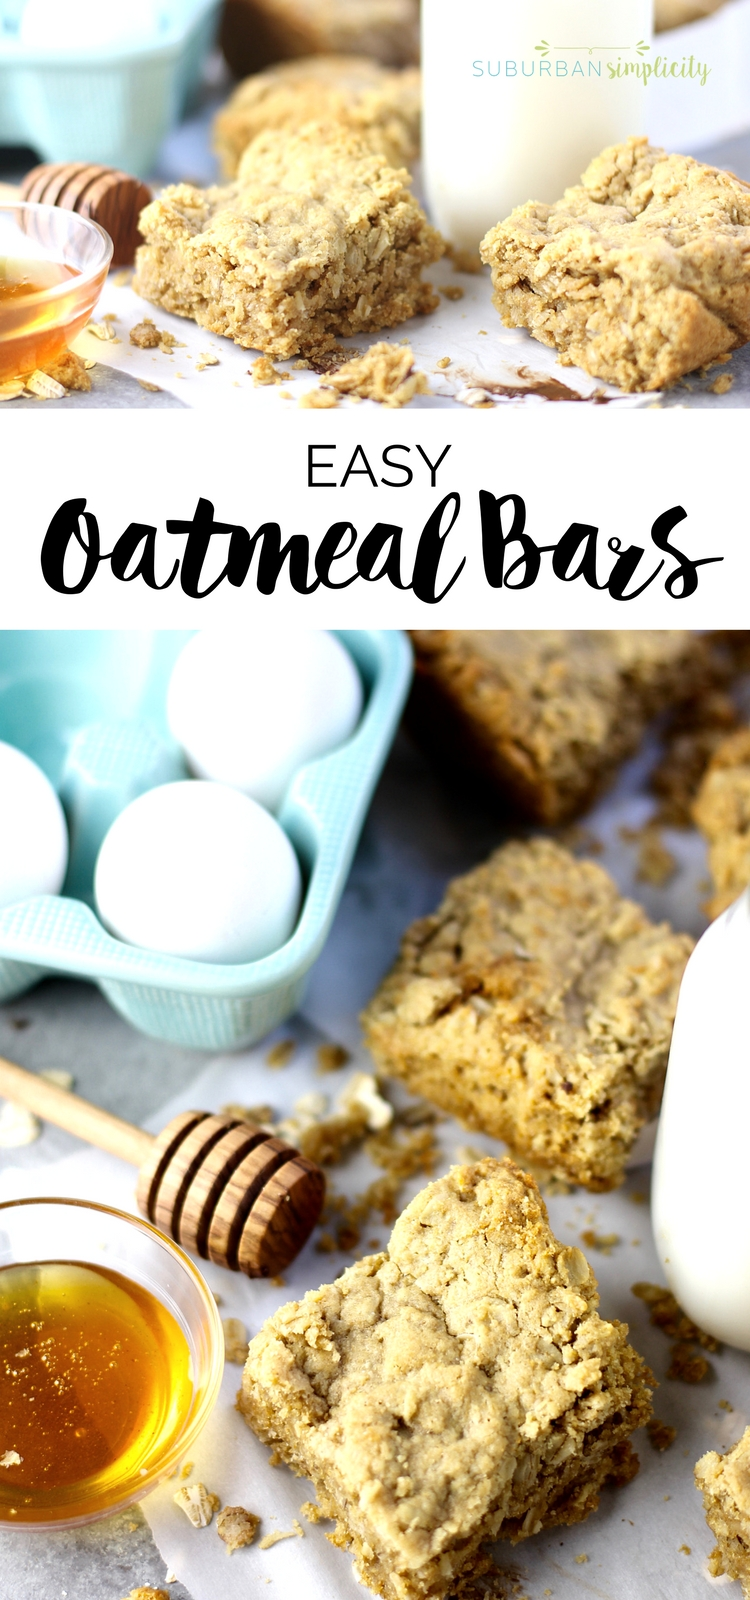 Try this recipe for delicious and easy oatmeal bars your whole family will love! It works great as breakfast or a midday snack! Delicious! #oatmeal #easyrecipe